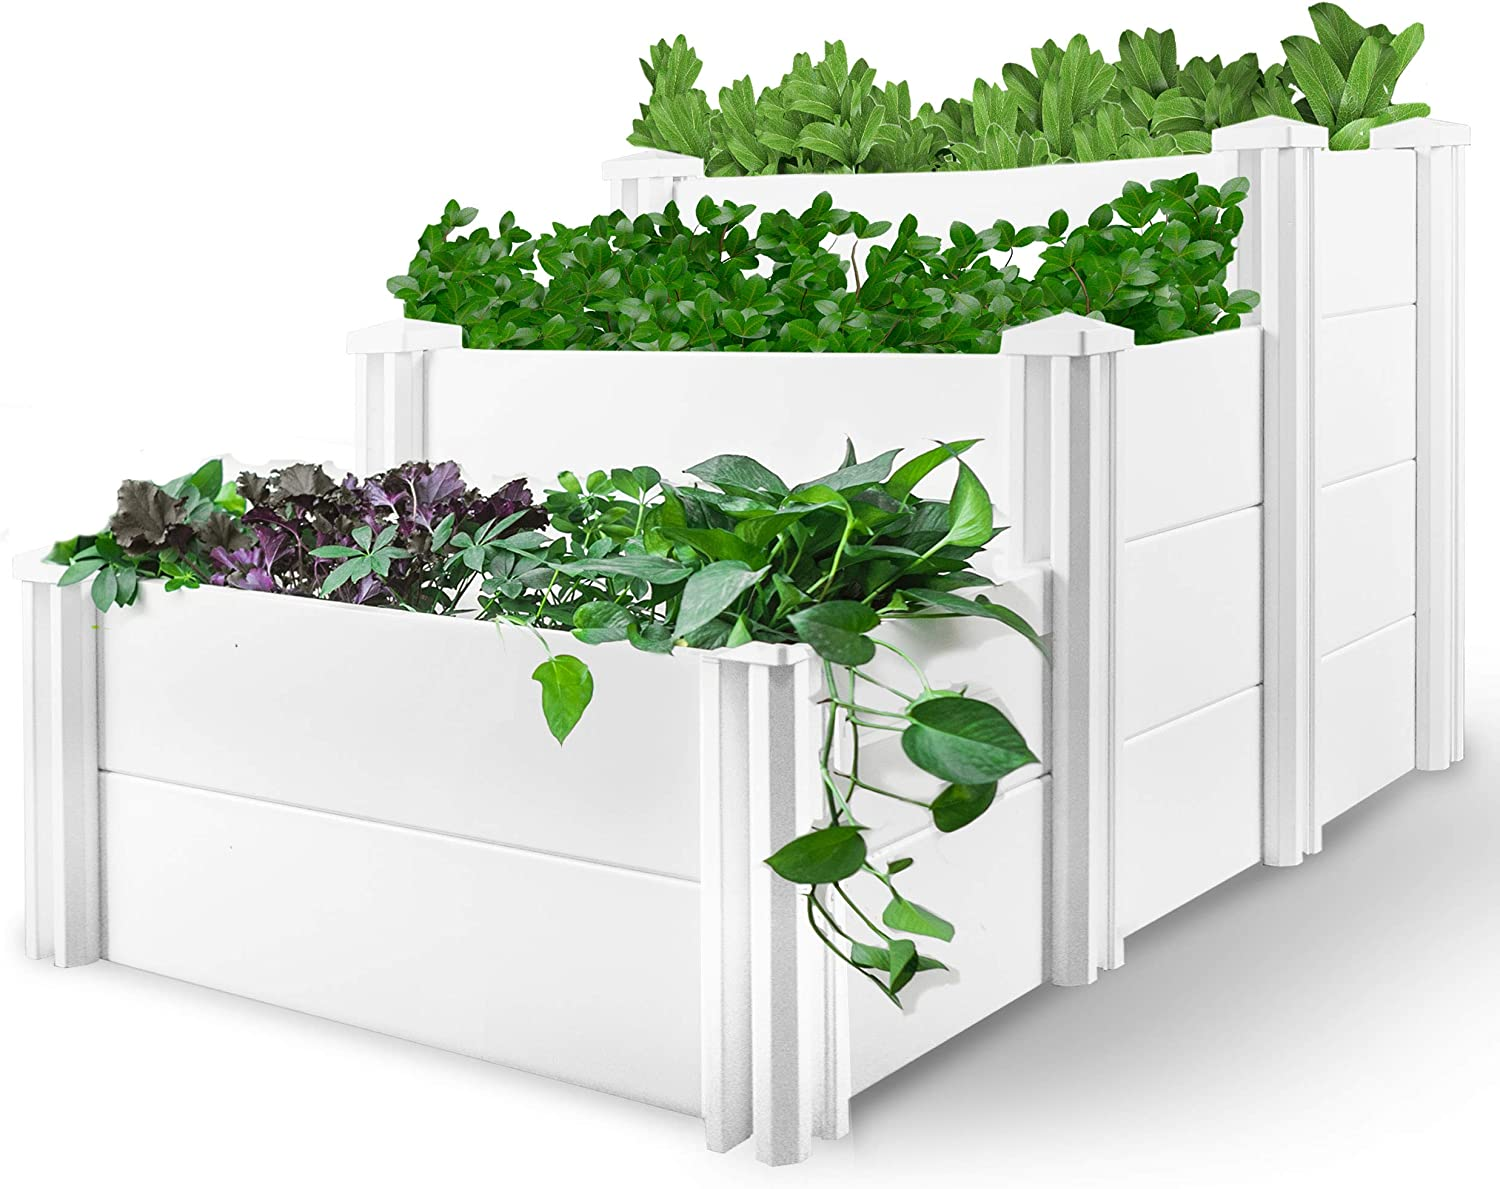 HEGEMONE Co. Tiered Raised Elevated Garden New arrival For Cheap SALE Start Box Bed Planter